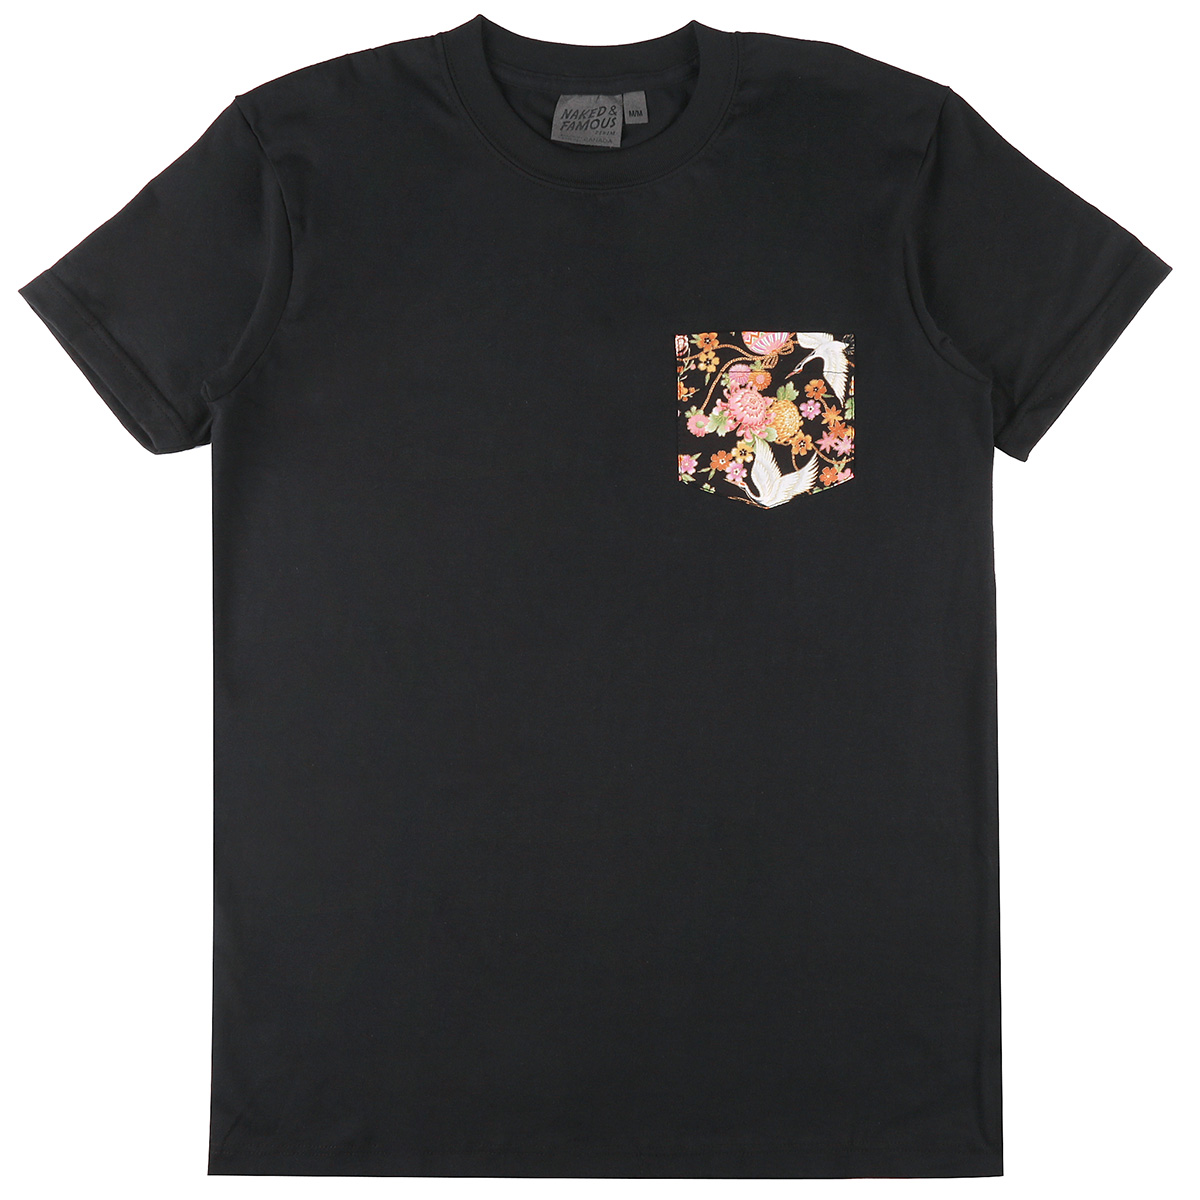 BLACK + JAPAN TSURU FESTIVAL - Pocket Tee